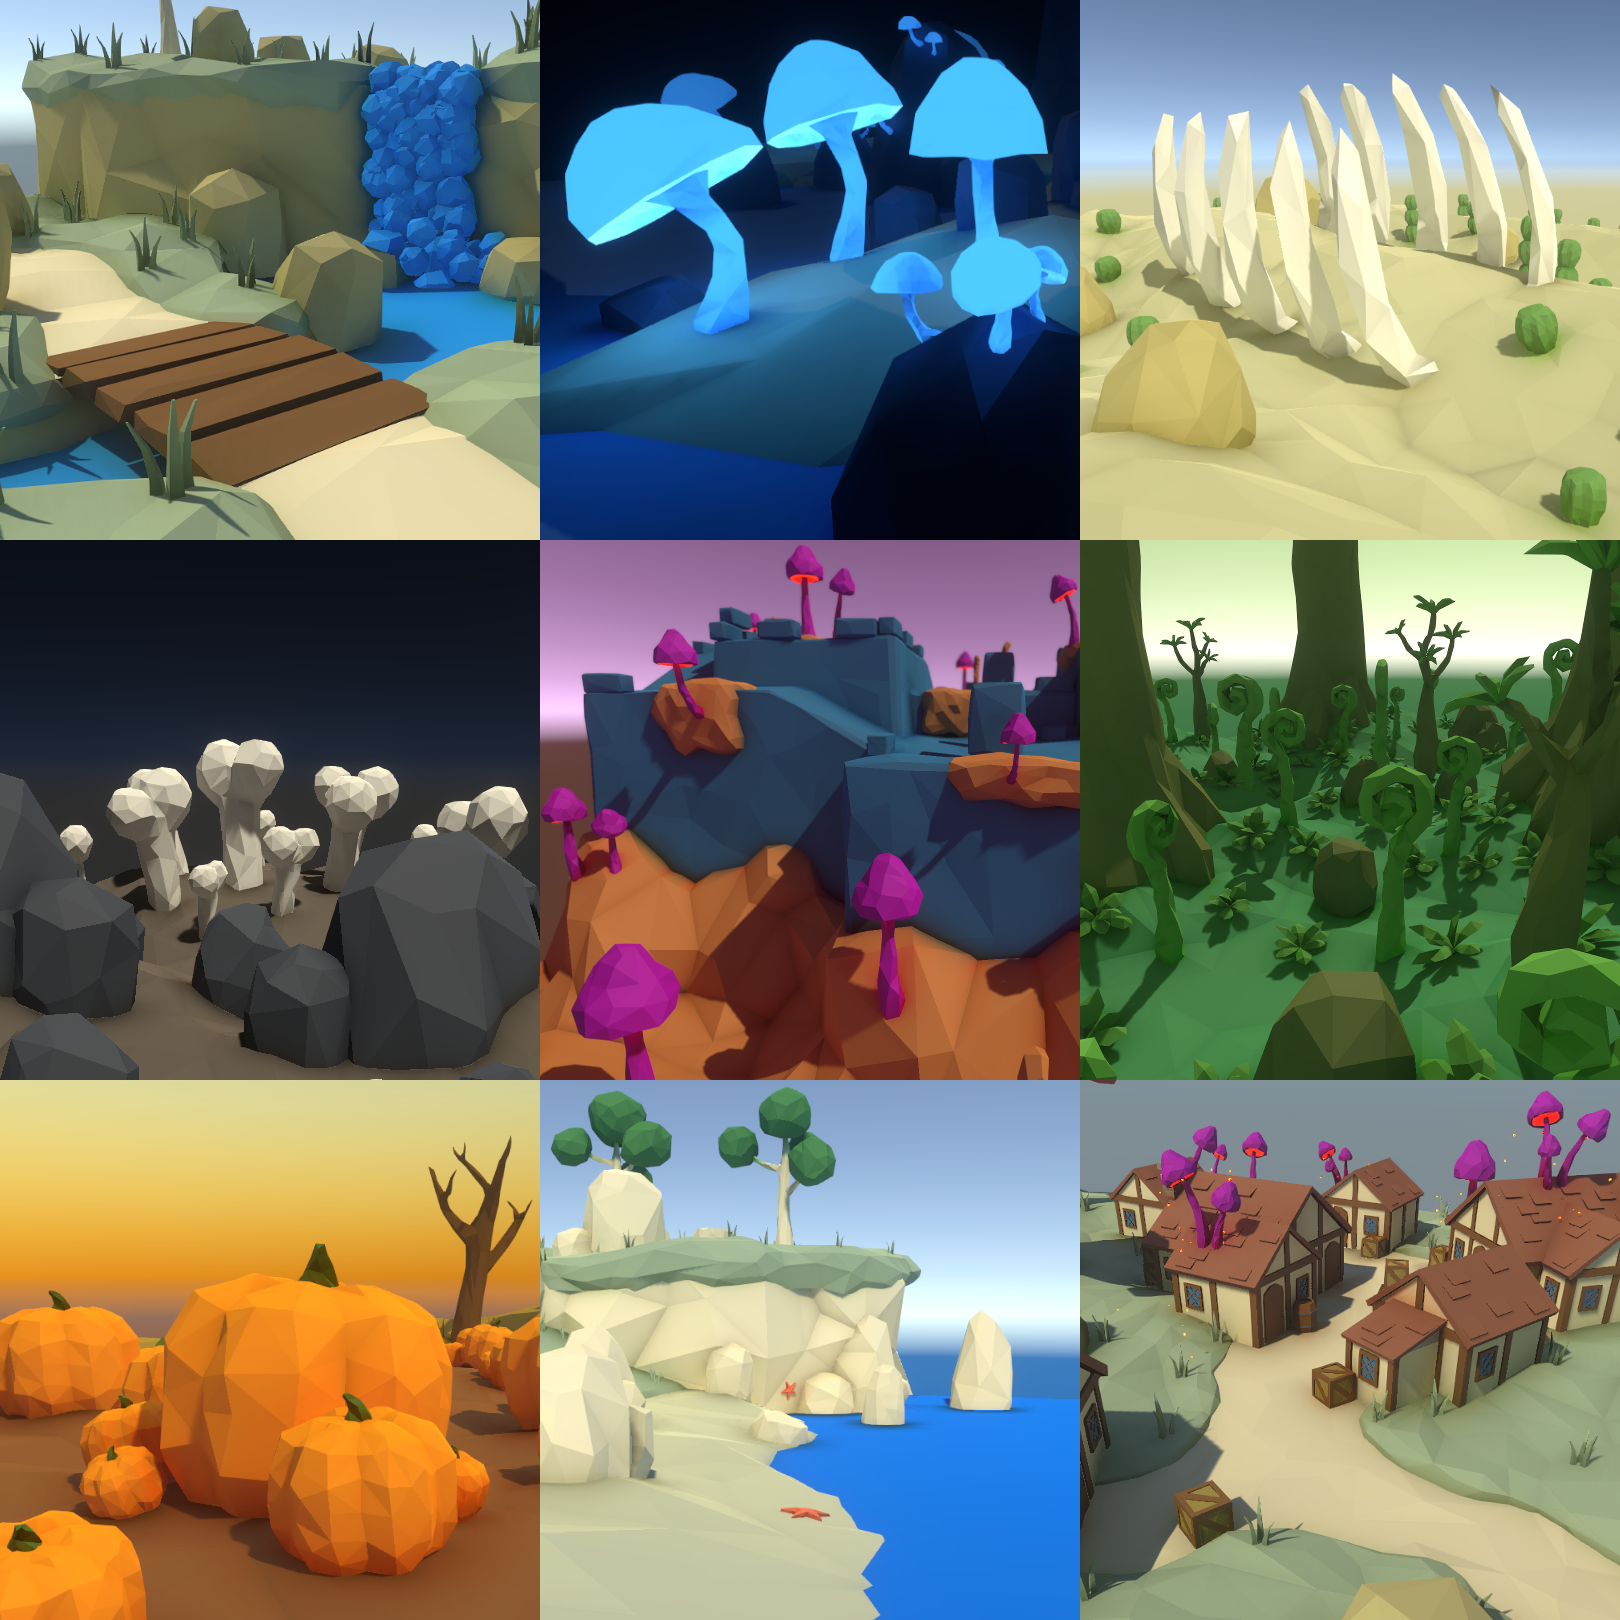 MindOverMushroomMapPicGrid_a.png